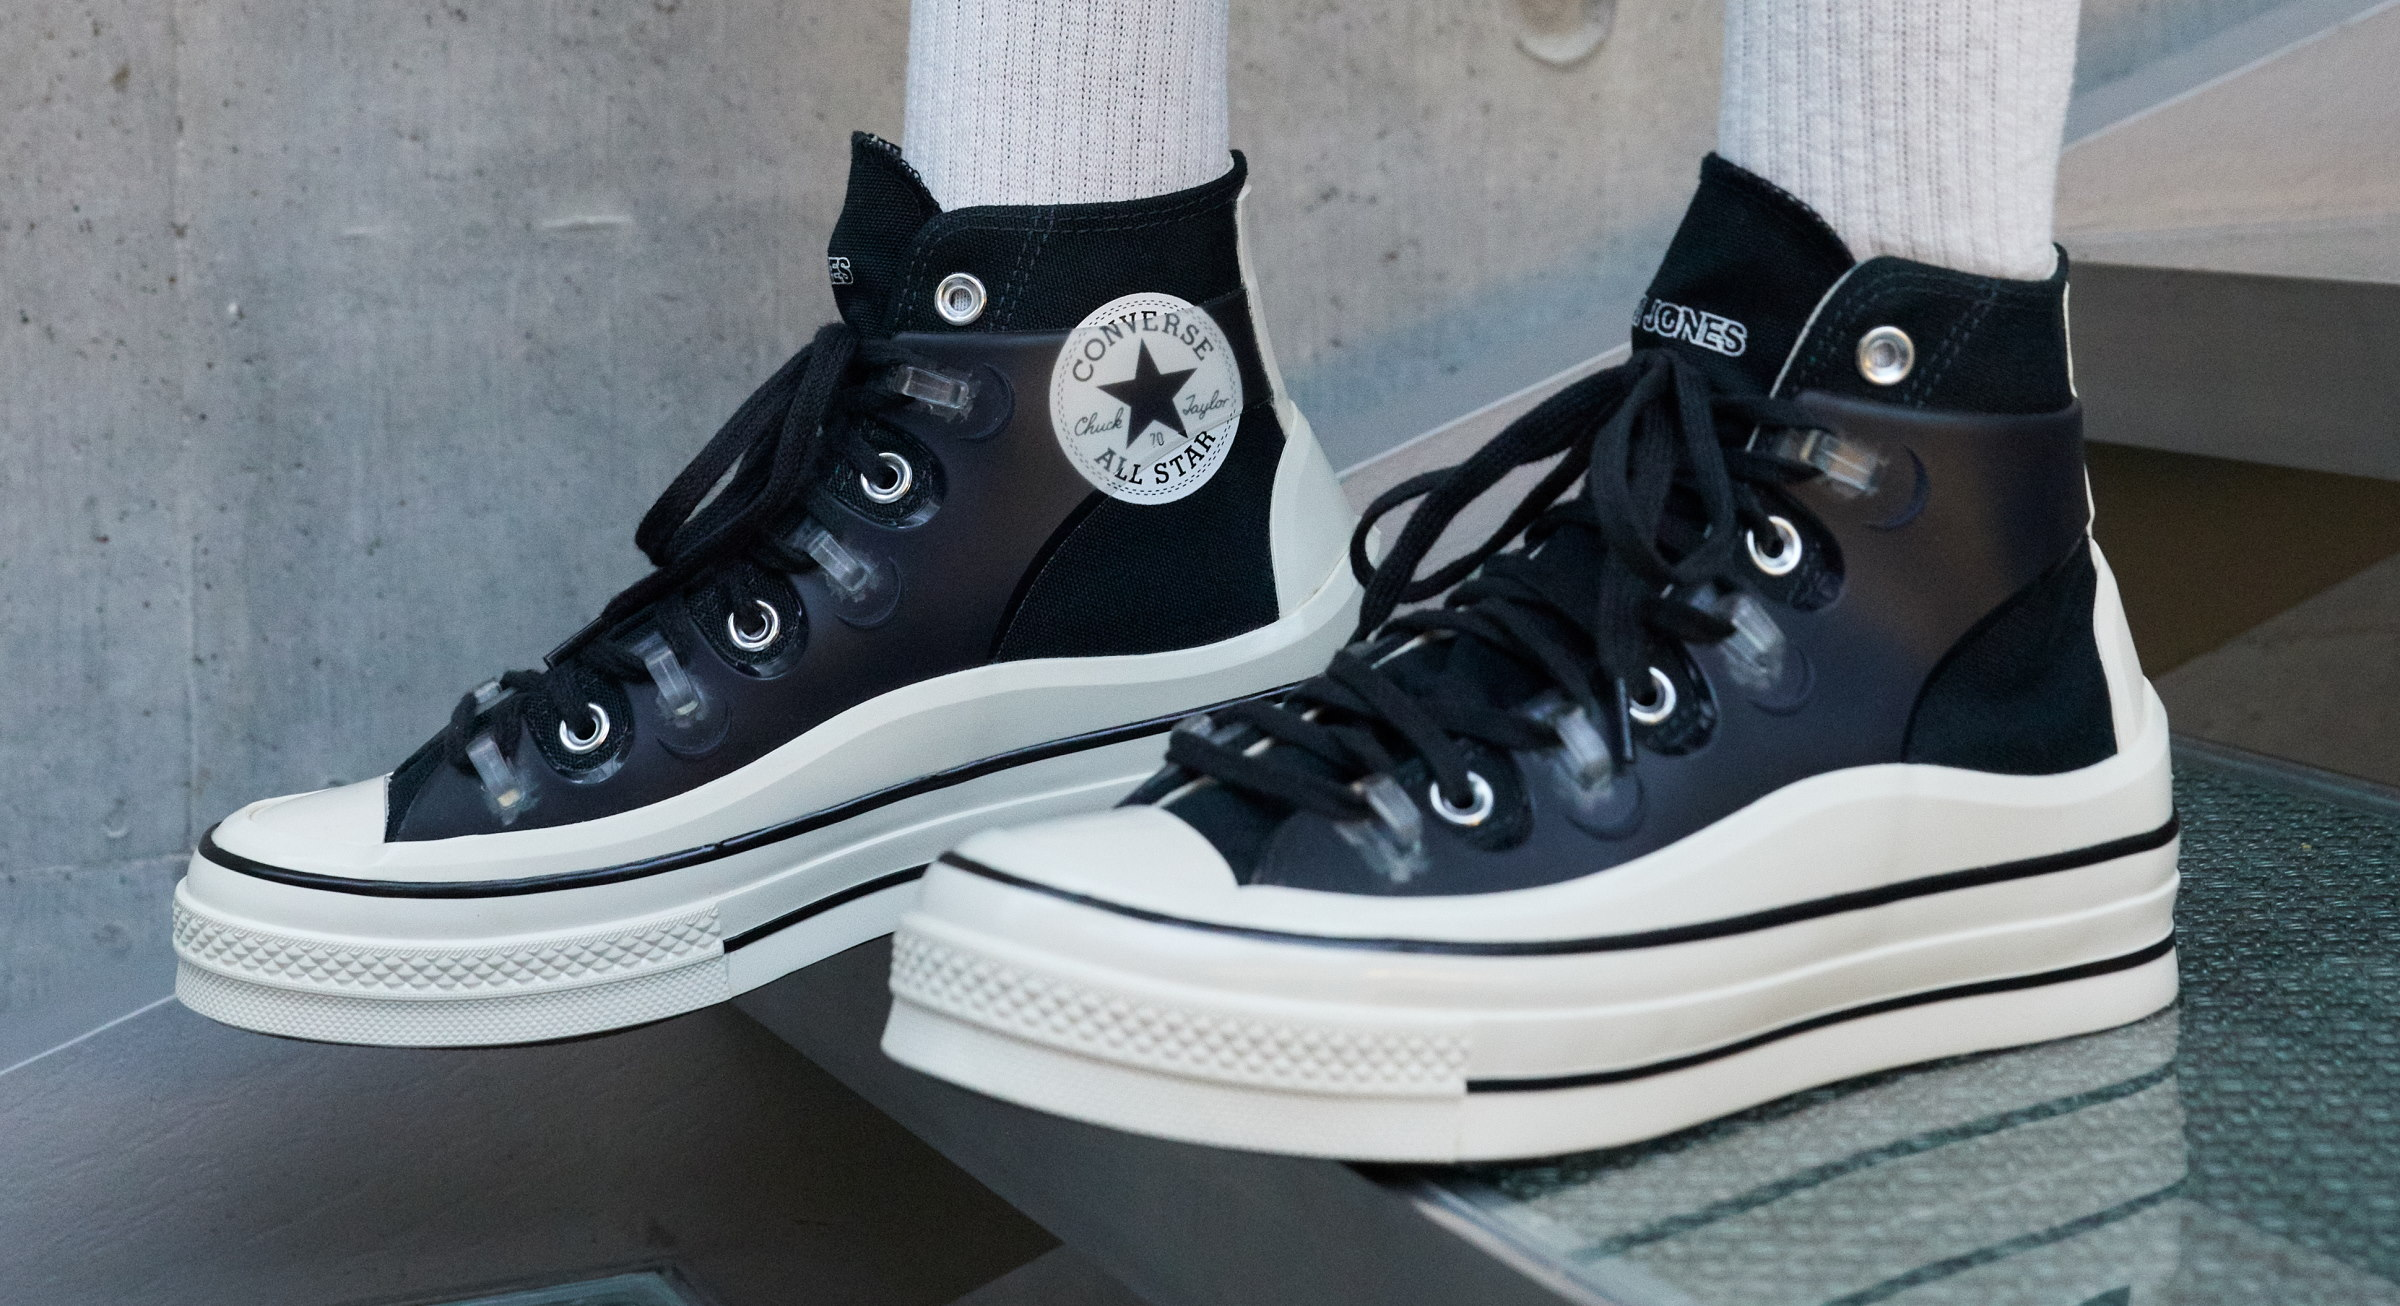 Converse x Kim Jones Collection Is A Throwback To The '90s